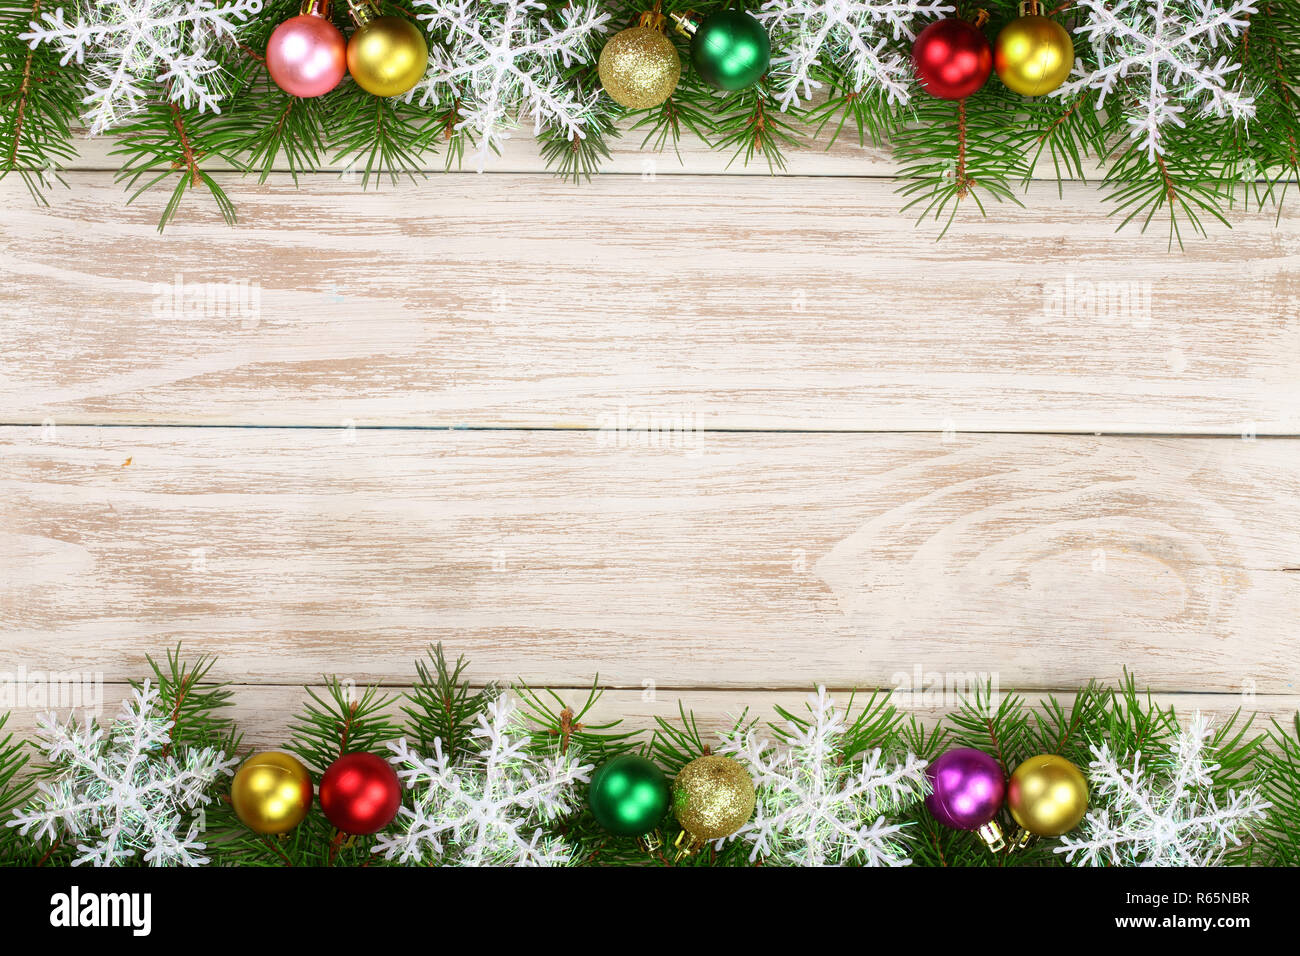 Christmas frame made of fir branches decorated with snowflakes and balls on a light wooden background - Stock Image